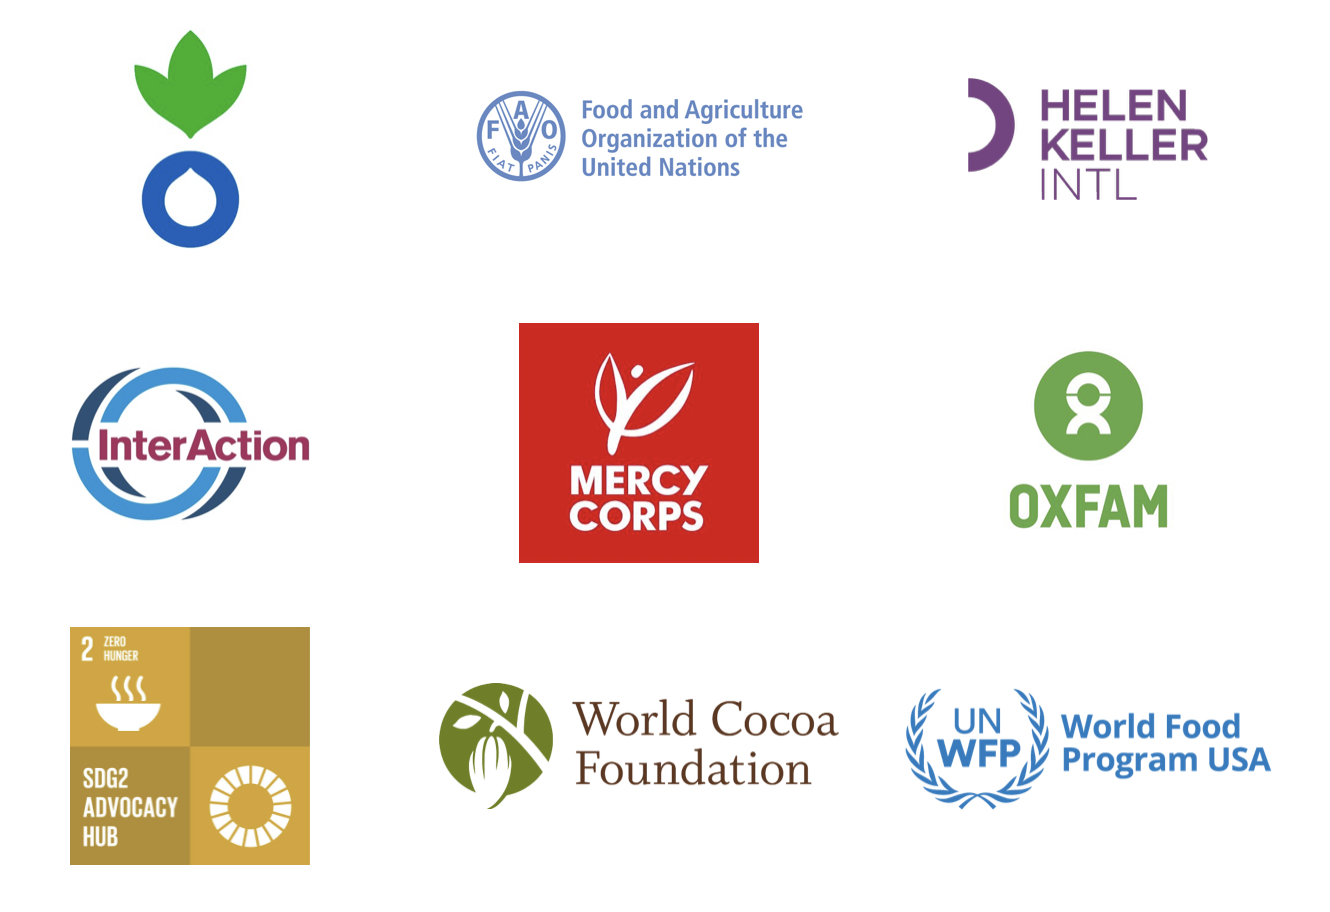 Logos of co-sponsor organizations listed above